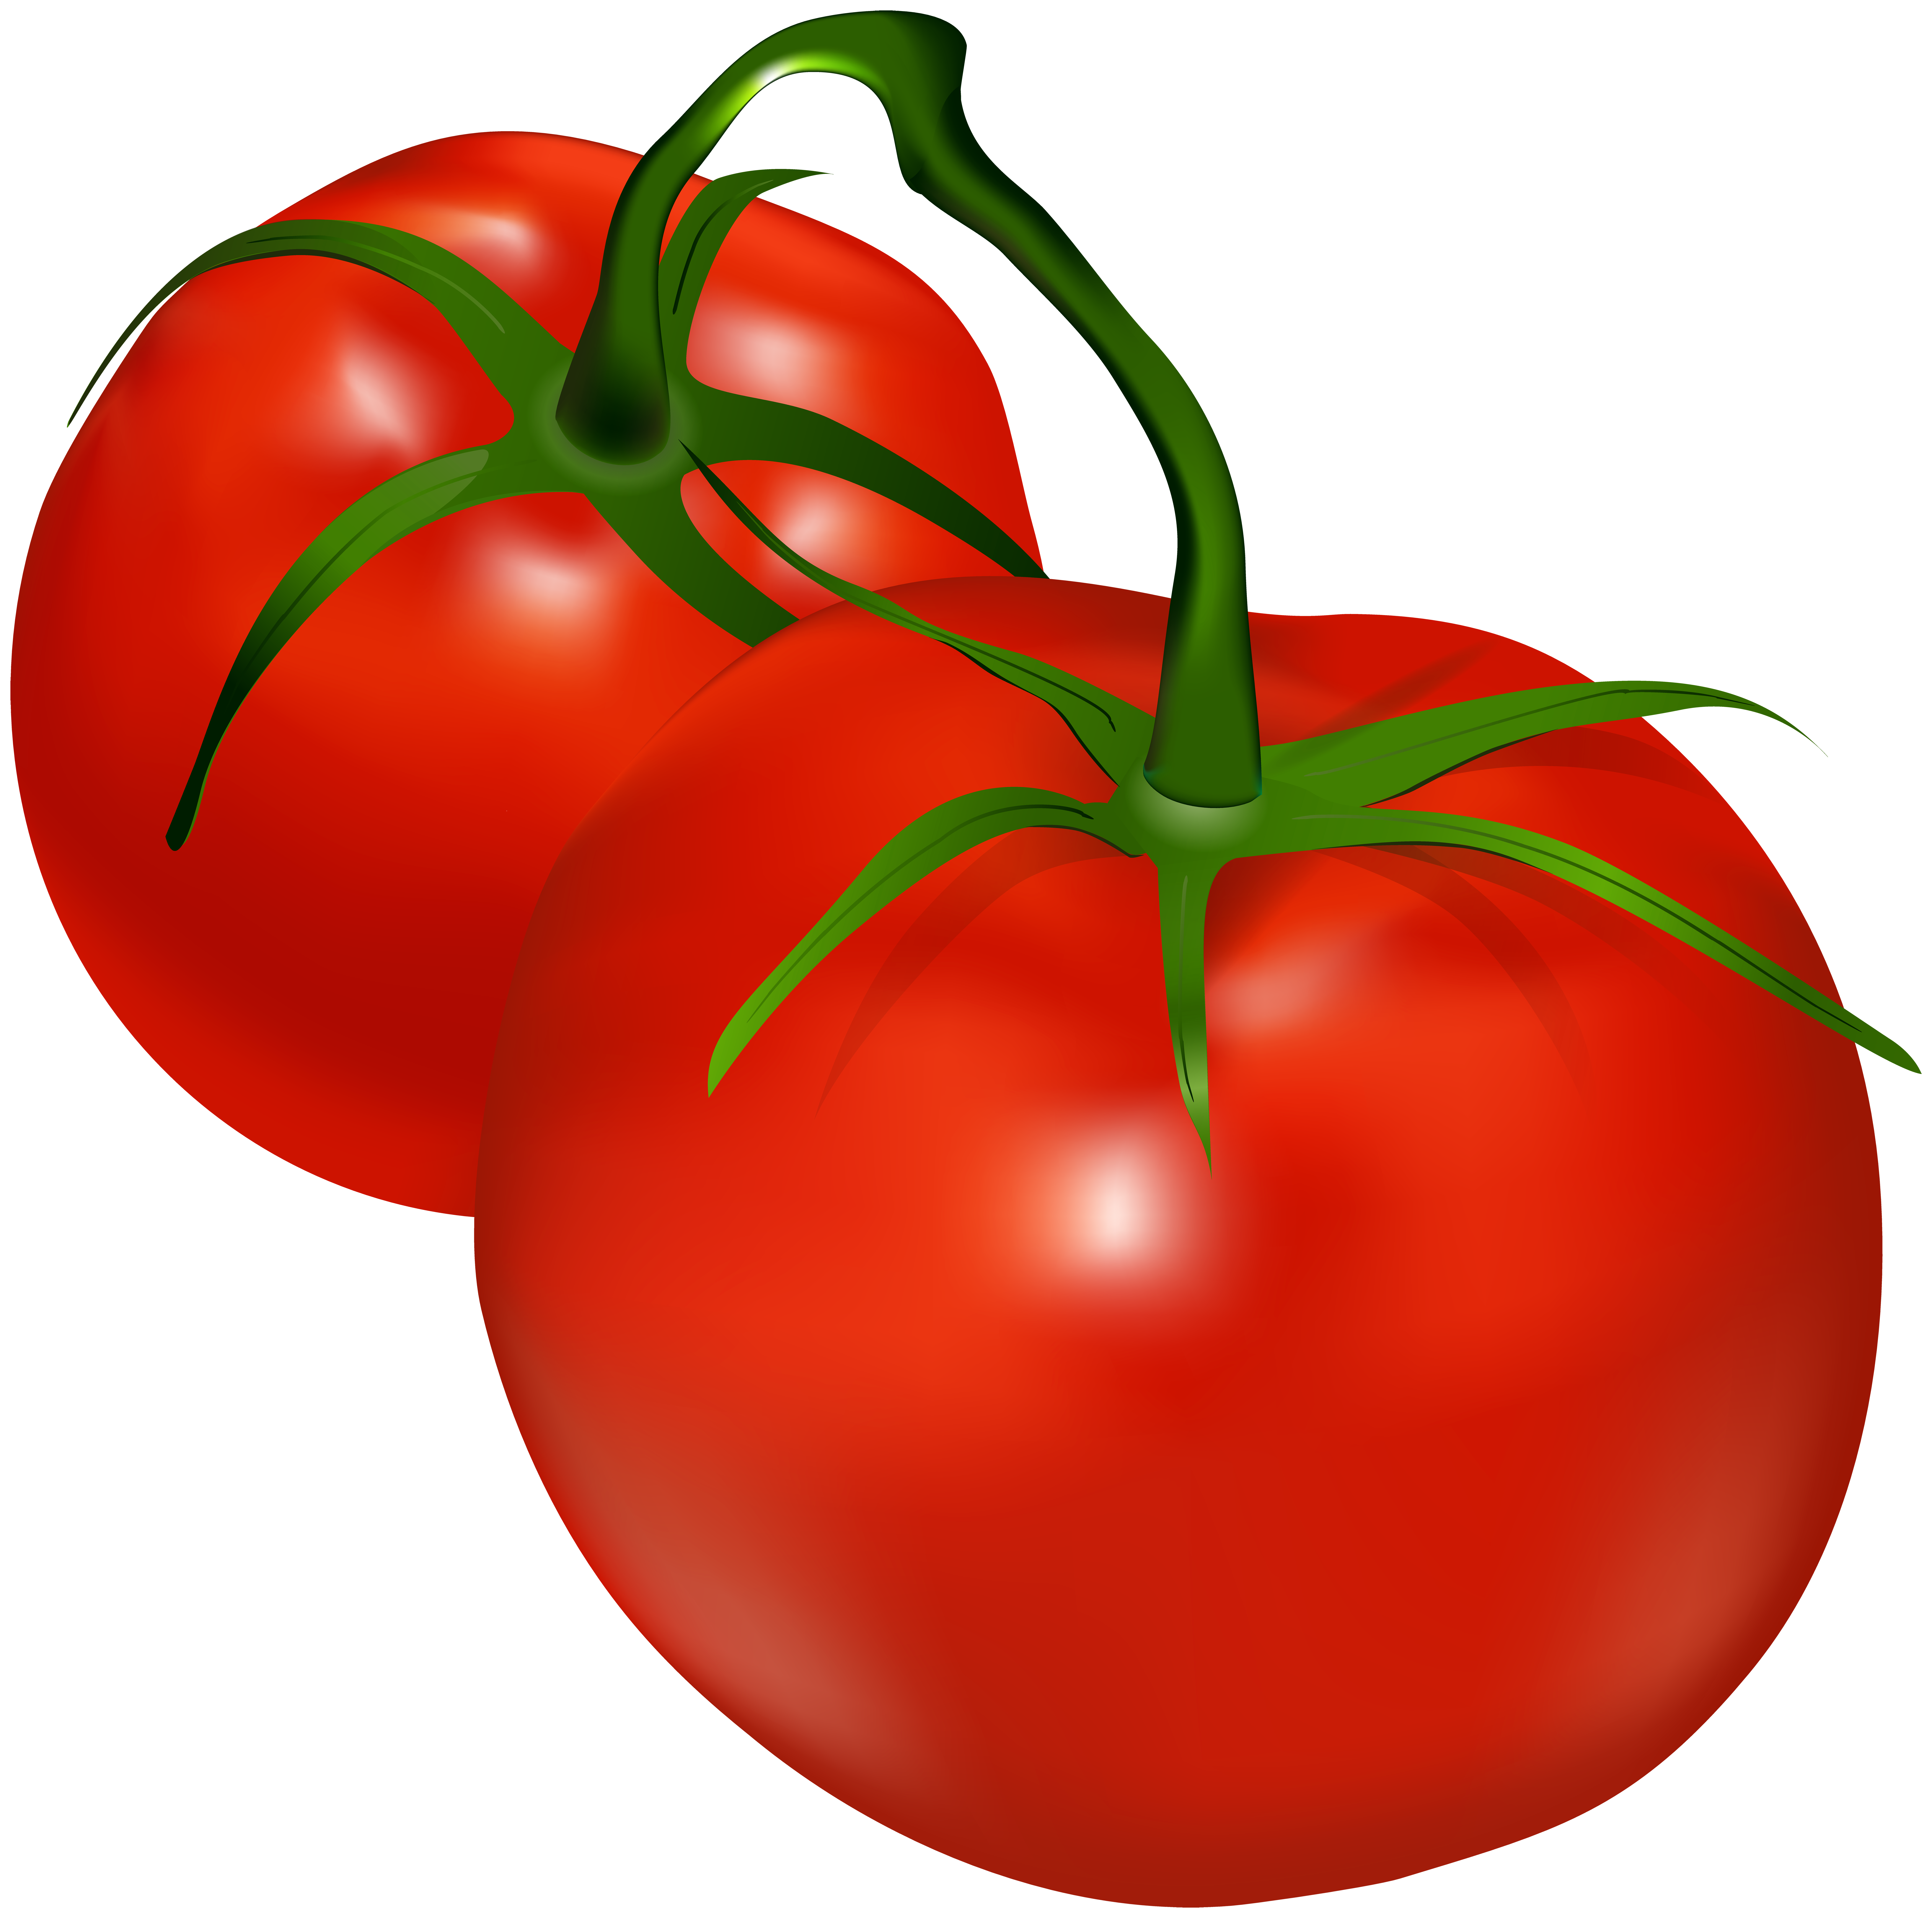 Tomatoes clipart. Transparent png clip art